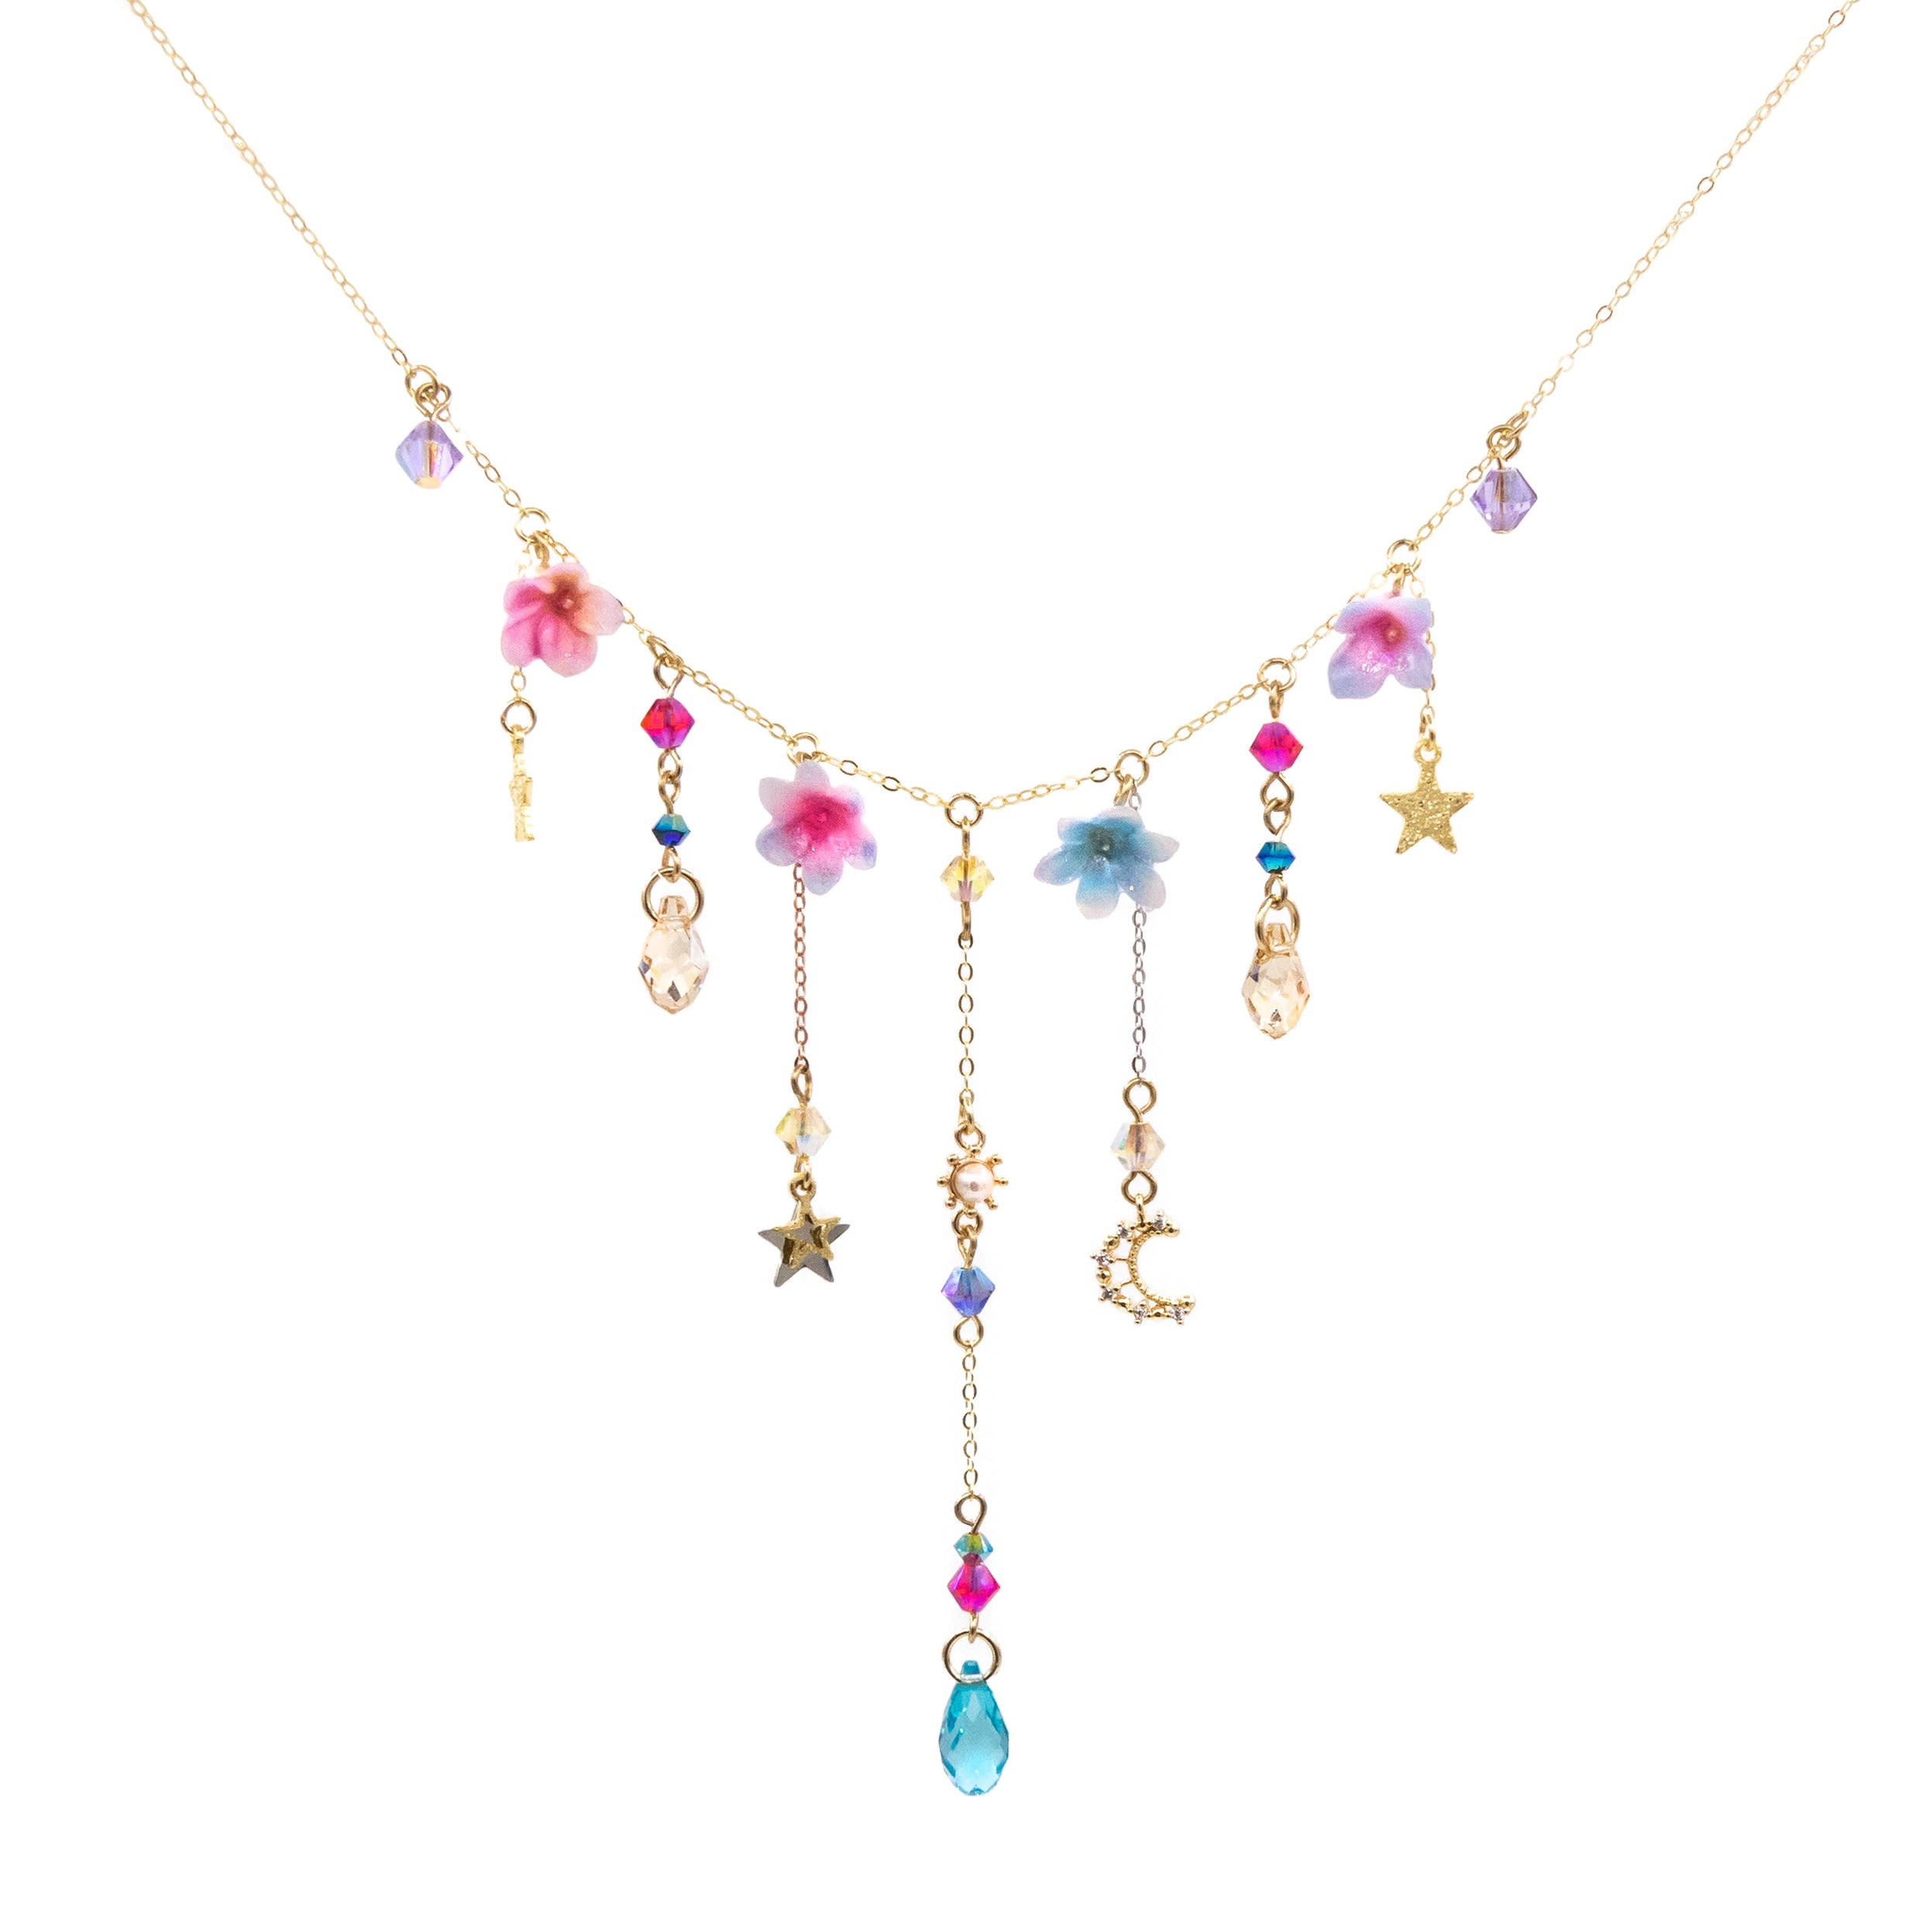 Luna Trio Gold-Plated 925 Silver Necklace Set